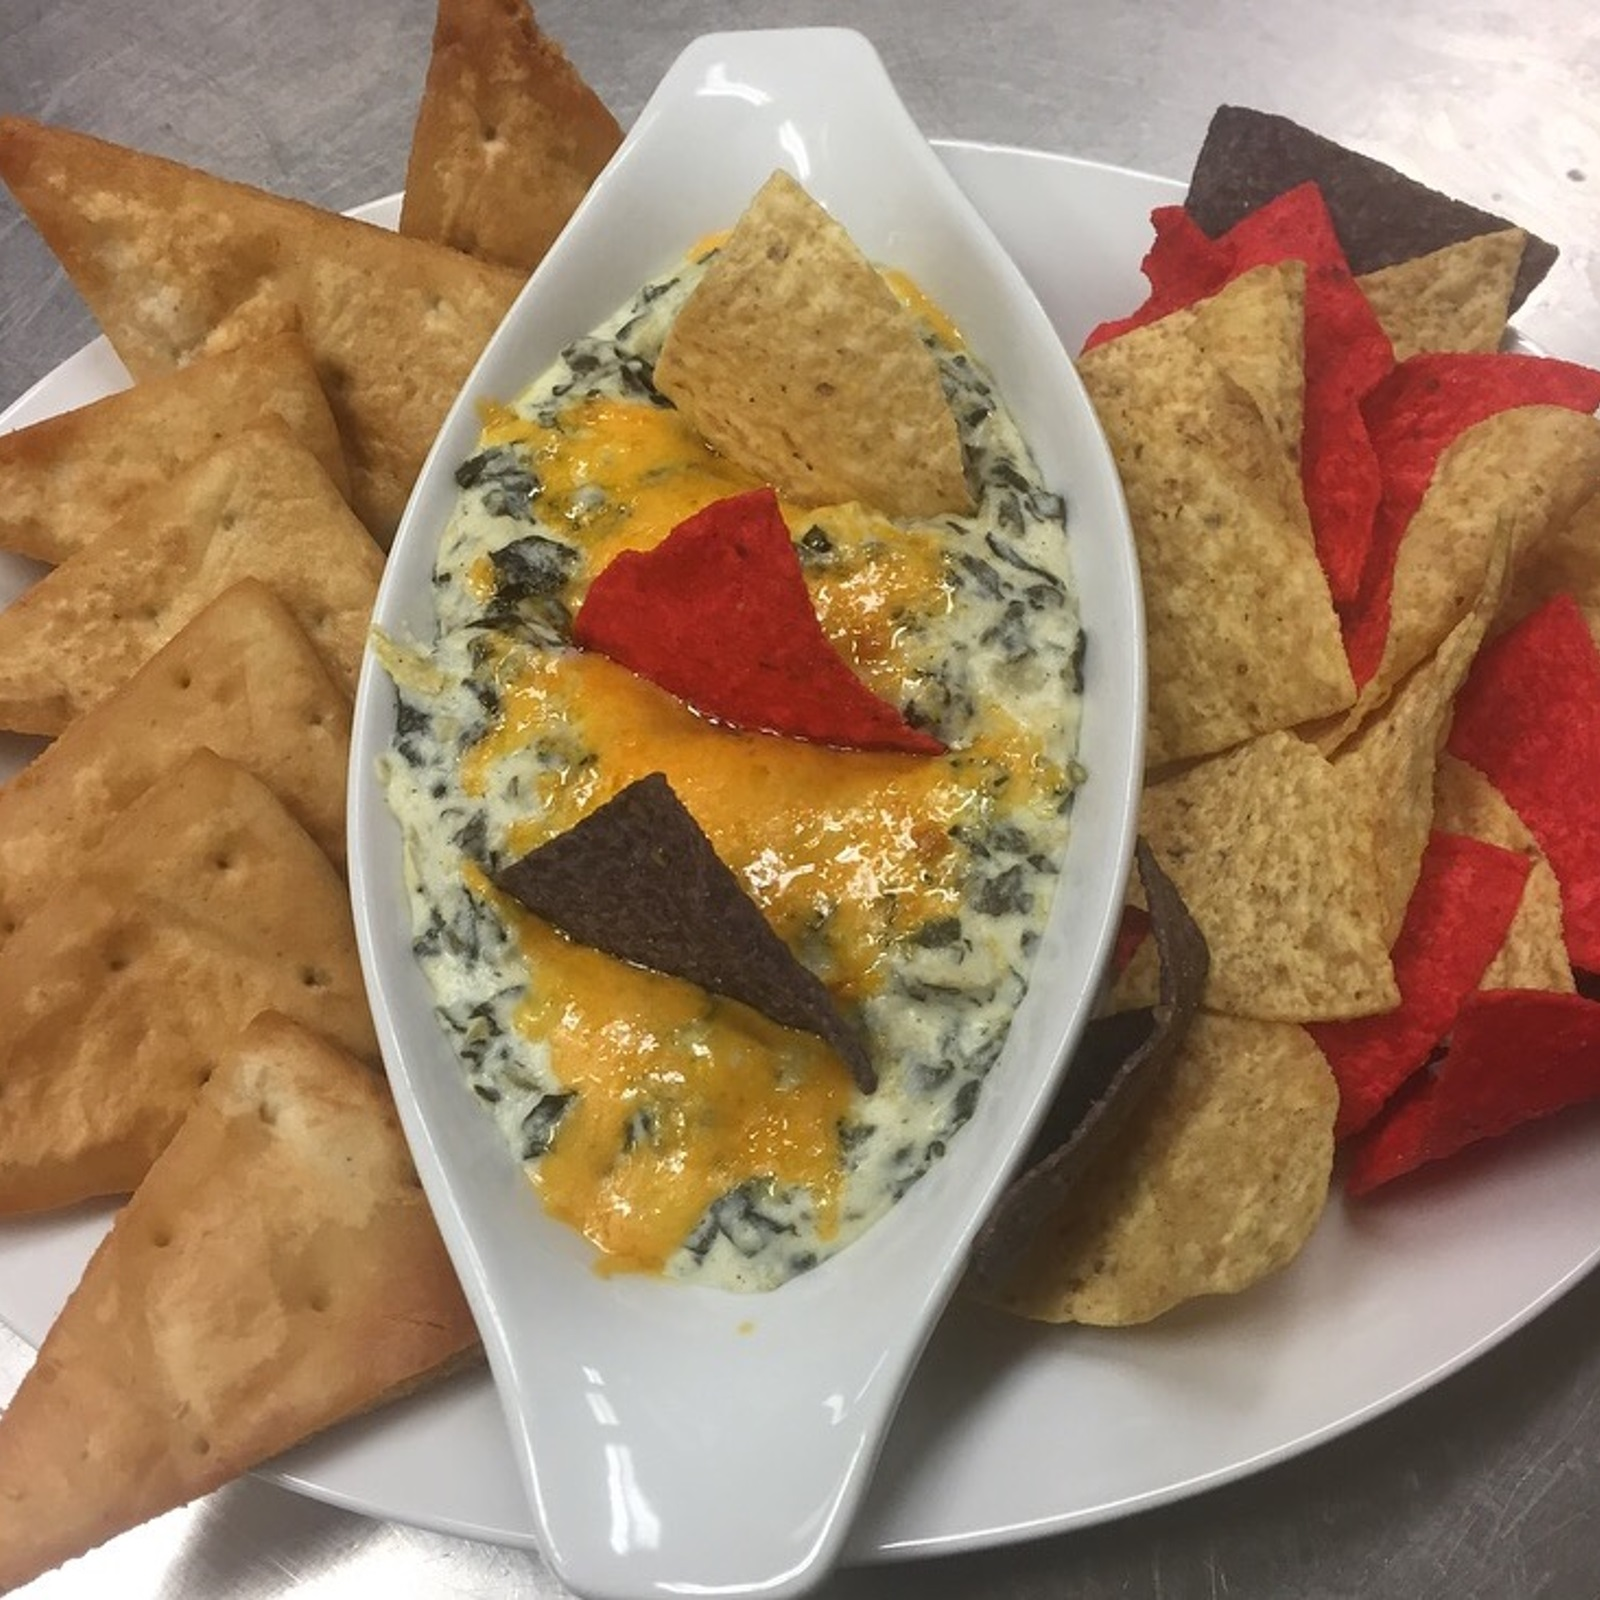 Picture of nachos and pita bread with dip